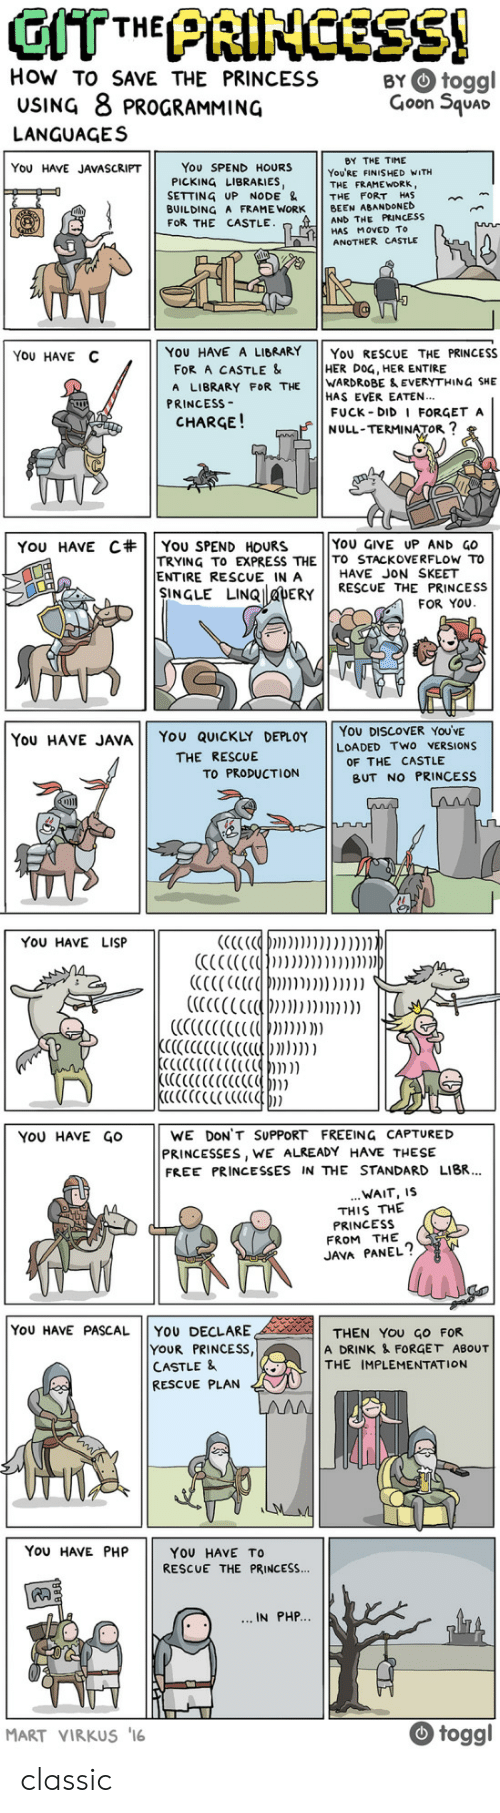 loaded: How TO SAVE THE PRINCESS BYtoggl  USING 8 PROGRAMMING  Goon 5quac  LANGUAGES  BY THE TIME  YoU'RE FINISHED WITH  THE FRAME WORK,  You SPEND HOURS  PICKING LIBRARIES,  SETTING UP NODE & THE FORT HAS  BUILDING A FRAME WORK BEEN ABANDONED  FOR THE CASTLE  YOU HAVE JAVASCRIPT  AND THE PRINCESS  HAS MoVED To  ANOTHER CASTLE  YoU HAVE C  YOU HAVE A LIBRARY YoU RESCUE THE PRINCESS  FOR A CASTLE &  A LIBRARY FOR THE WARDROBE & EVERYTHING SHE  HER DOG, HER ENTIRE  HAS EVER EATEN..  FUCK DID I FORGET A  NULL-TERMINATOR  PRINCESs-  CHARGE!  YOU GIVE UP AND GO  TRYING TO EXPRESS THE TO STACKOVERFLOw To  YOU HAVE C#| | You SPEND HOURS  ENTIRE RESCUE IN A  HAVE JON SKEET  NGLE LINQ DERY RESCUE THE PRINCESS  FOR YOU  You HAVE JAVA YOU QUICKLY DEPLOY YOU DISCOVER YOUVE  LOADED TWO VERSIONS  THE RESCUE  OF THE CASTLE  PRODUCTION BUT NO  BUT NO PRINCESS  YOU HAVE LISP  YoU HAvE GOWE DON'T SUPPORT FREEING CAPTURED  PRINCESSES, WE ALREADY HAVE THESIE  FREE PRINCESSES IN THE STANDARD LIBR.  WAIT, IS  THIS THE  PRINCESS  FROM THE  JAVA PANEL?  YoU HAVE PASCAL YOU DECLARE  YOUR PRINCESS  CASTLE &  RESCUE PLAN  THEN YOU GO FOR  A DRINK & FORGET ABOUT  THE IMPLEMENTATION  You HAVE PHP  YOU HAVE TO  RESCUE THE PRINCESS...  IN PHP  MART VIRKUS 16  togg classic